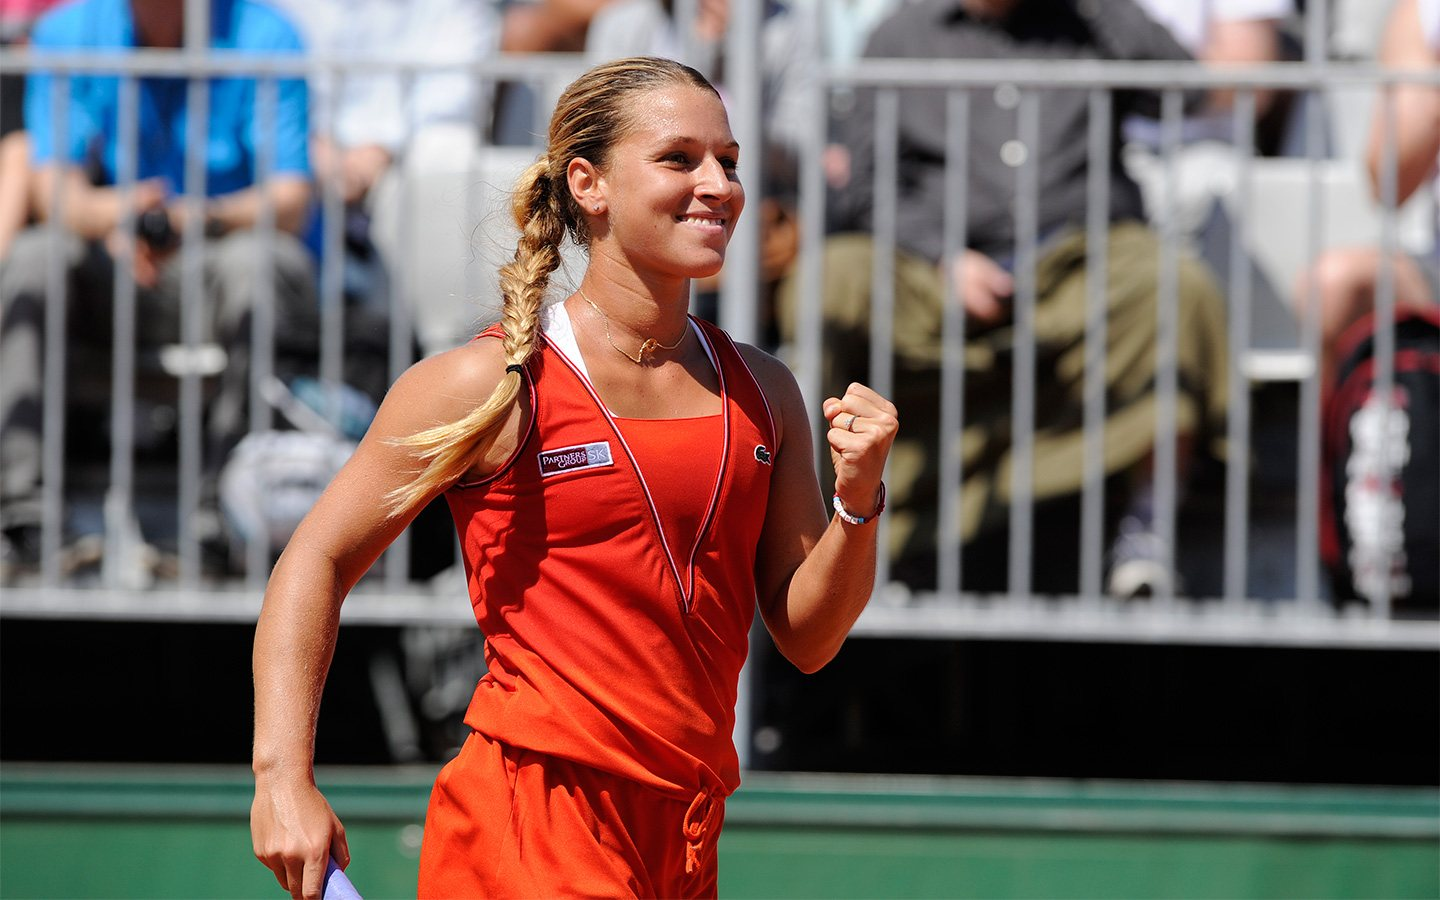 Dominika Cibulkova Smiling 2013 Cute Slovak Tennis Player Hd Desktop